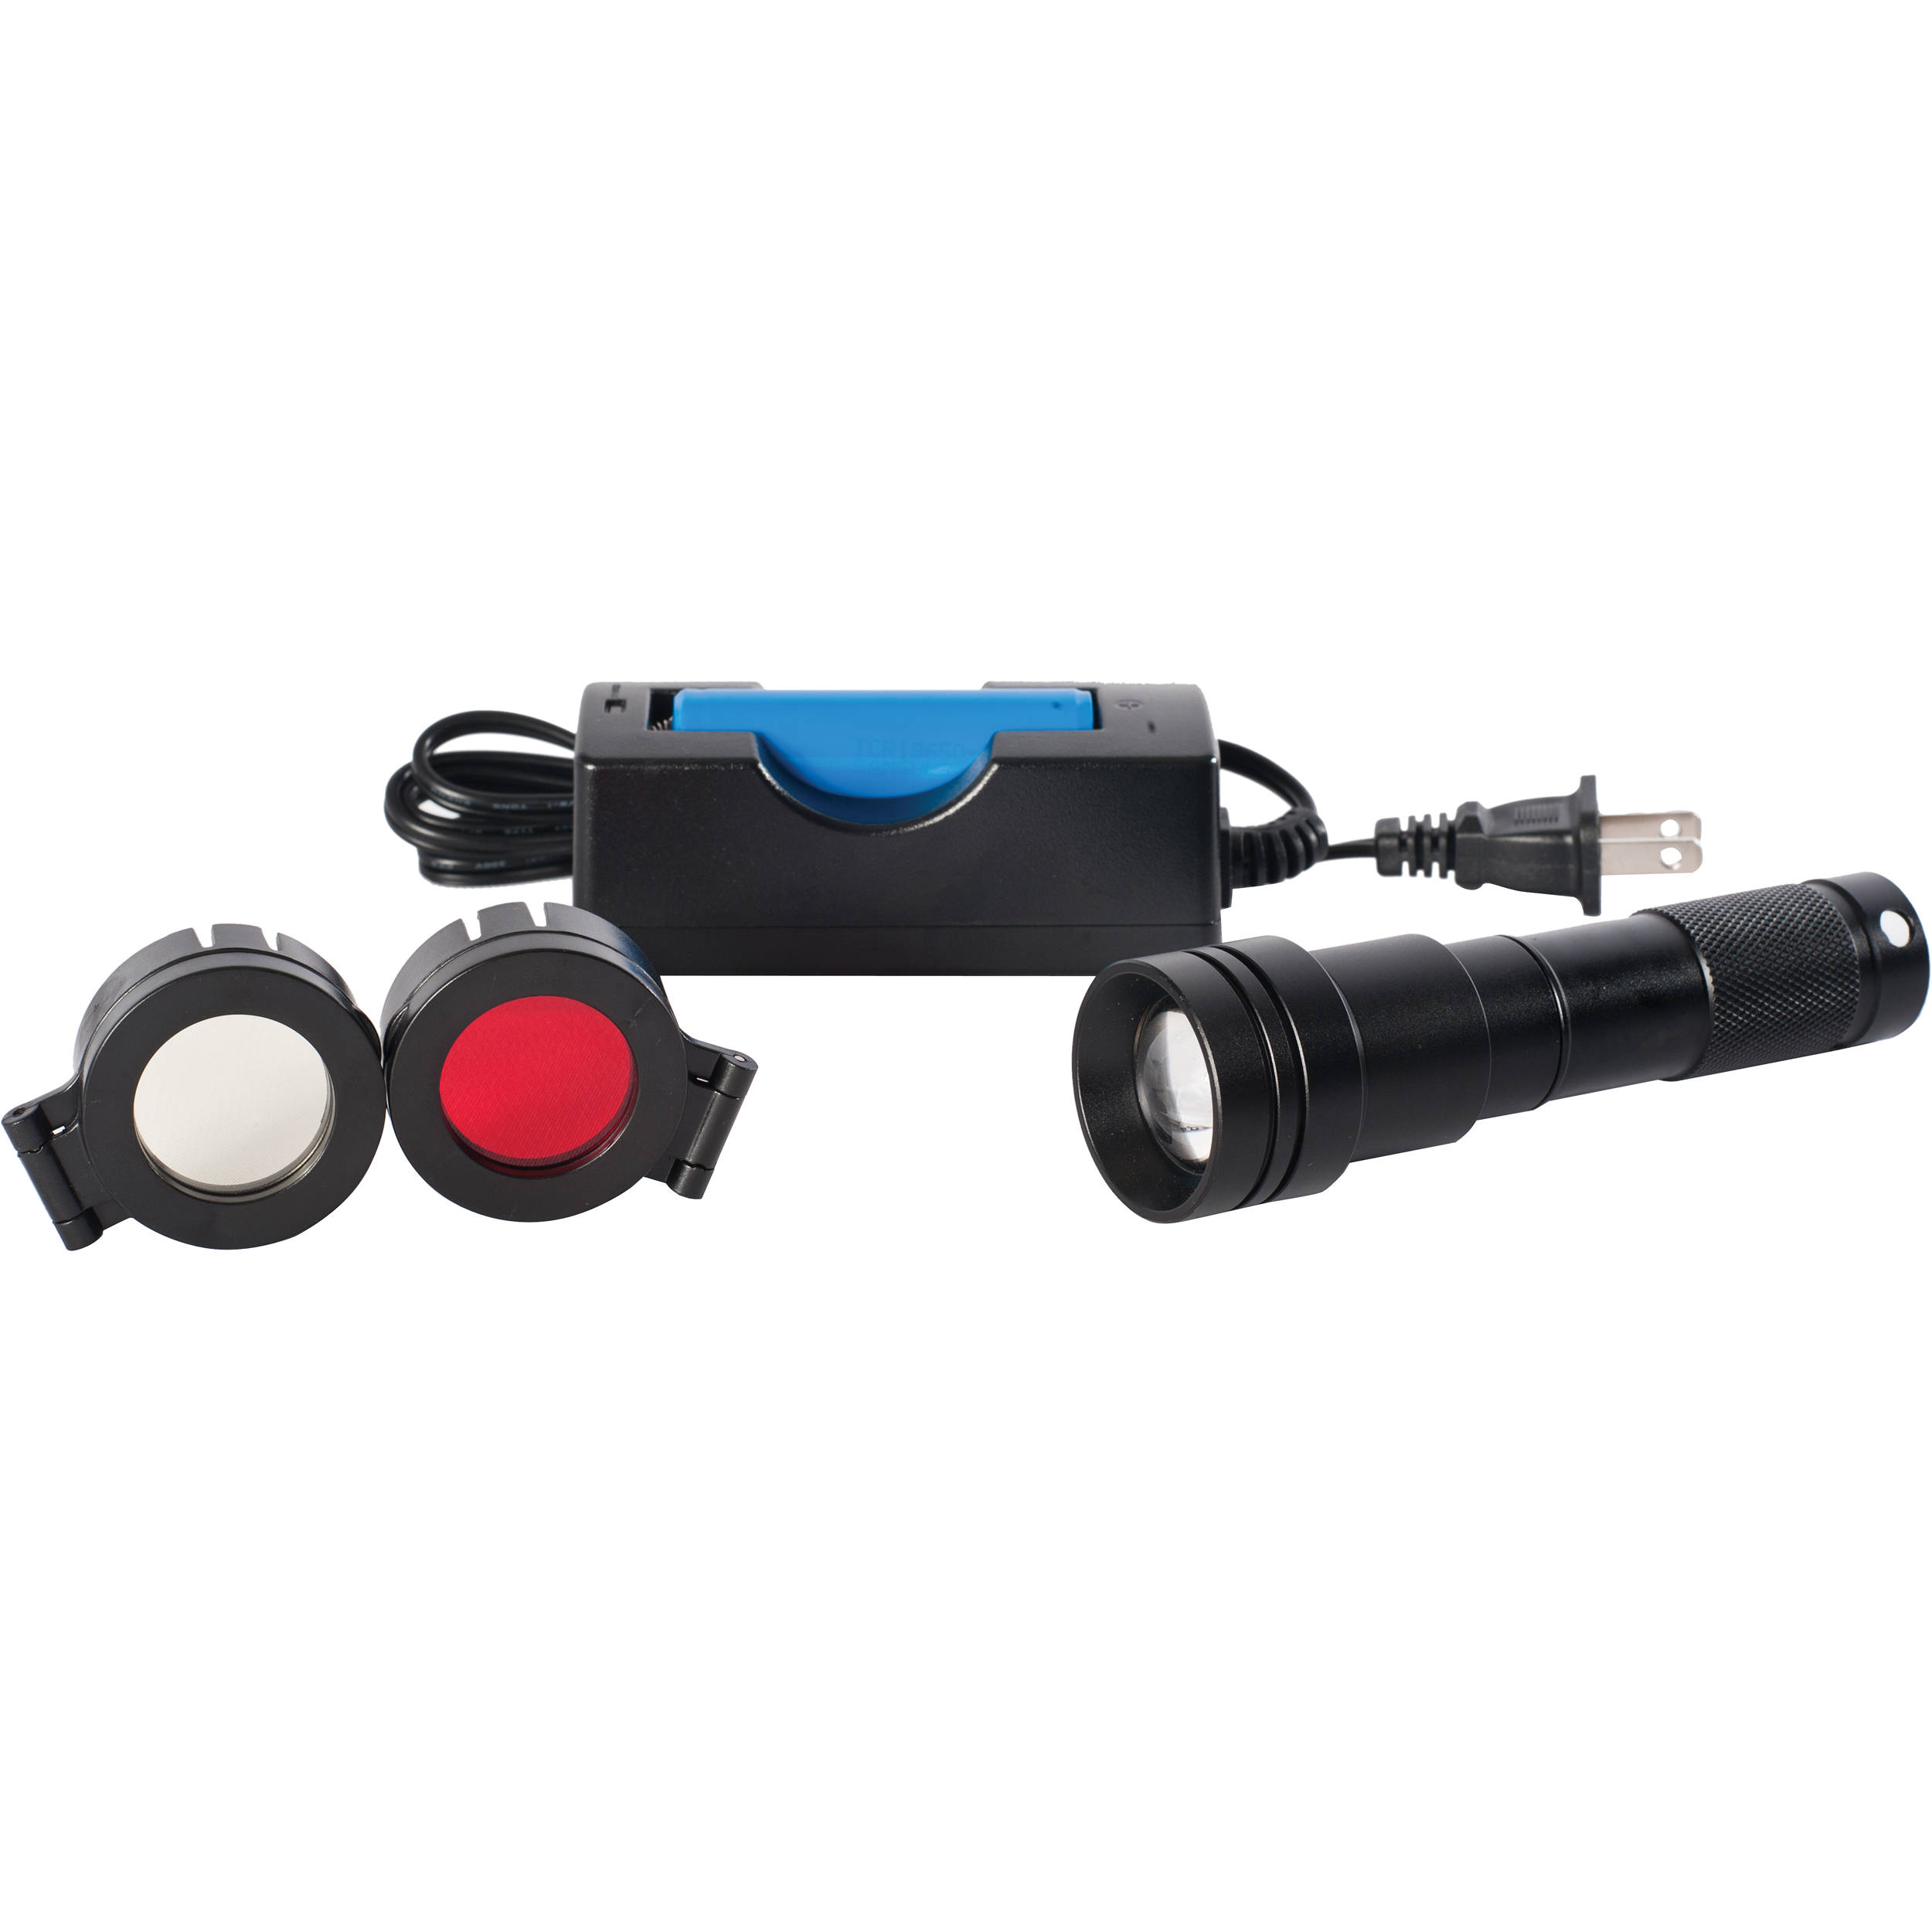 Equinox Bigblue AL900XWP Rechargeable LED Dive Light ...